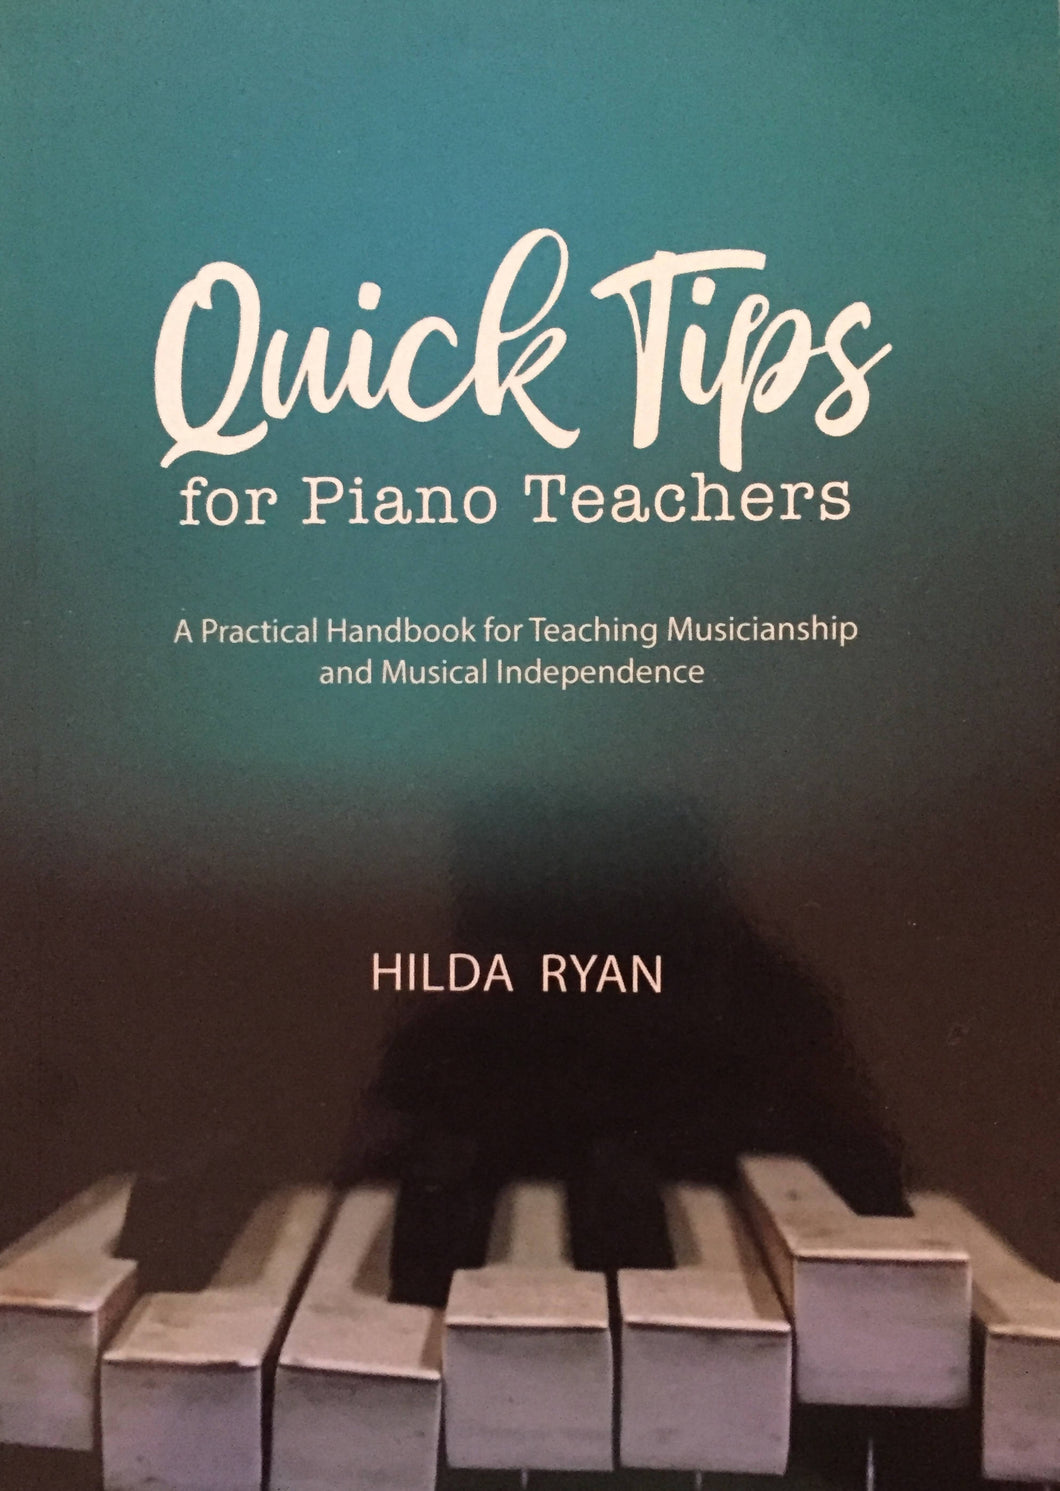 Quick Tips for Piano Teachers, A Practical Handbook for Teaching Musicianship and Musical Independence